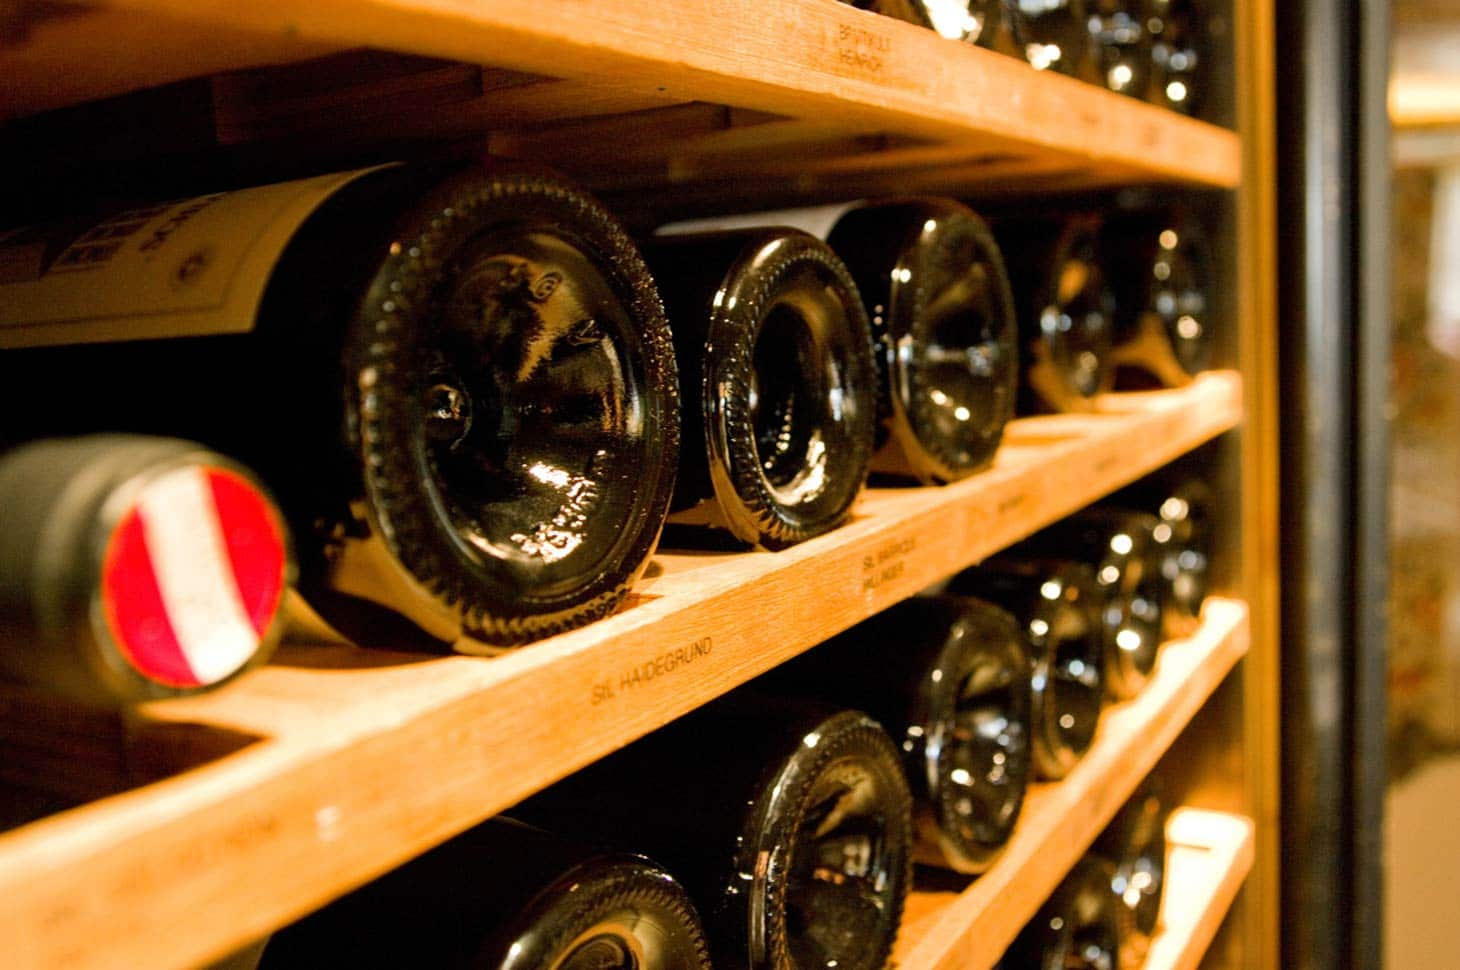 Close up of several bottles of fine wine stores within the Hotel's wine cellar.r